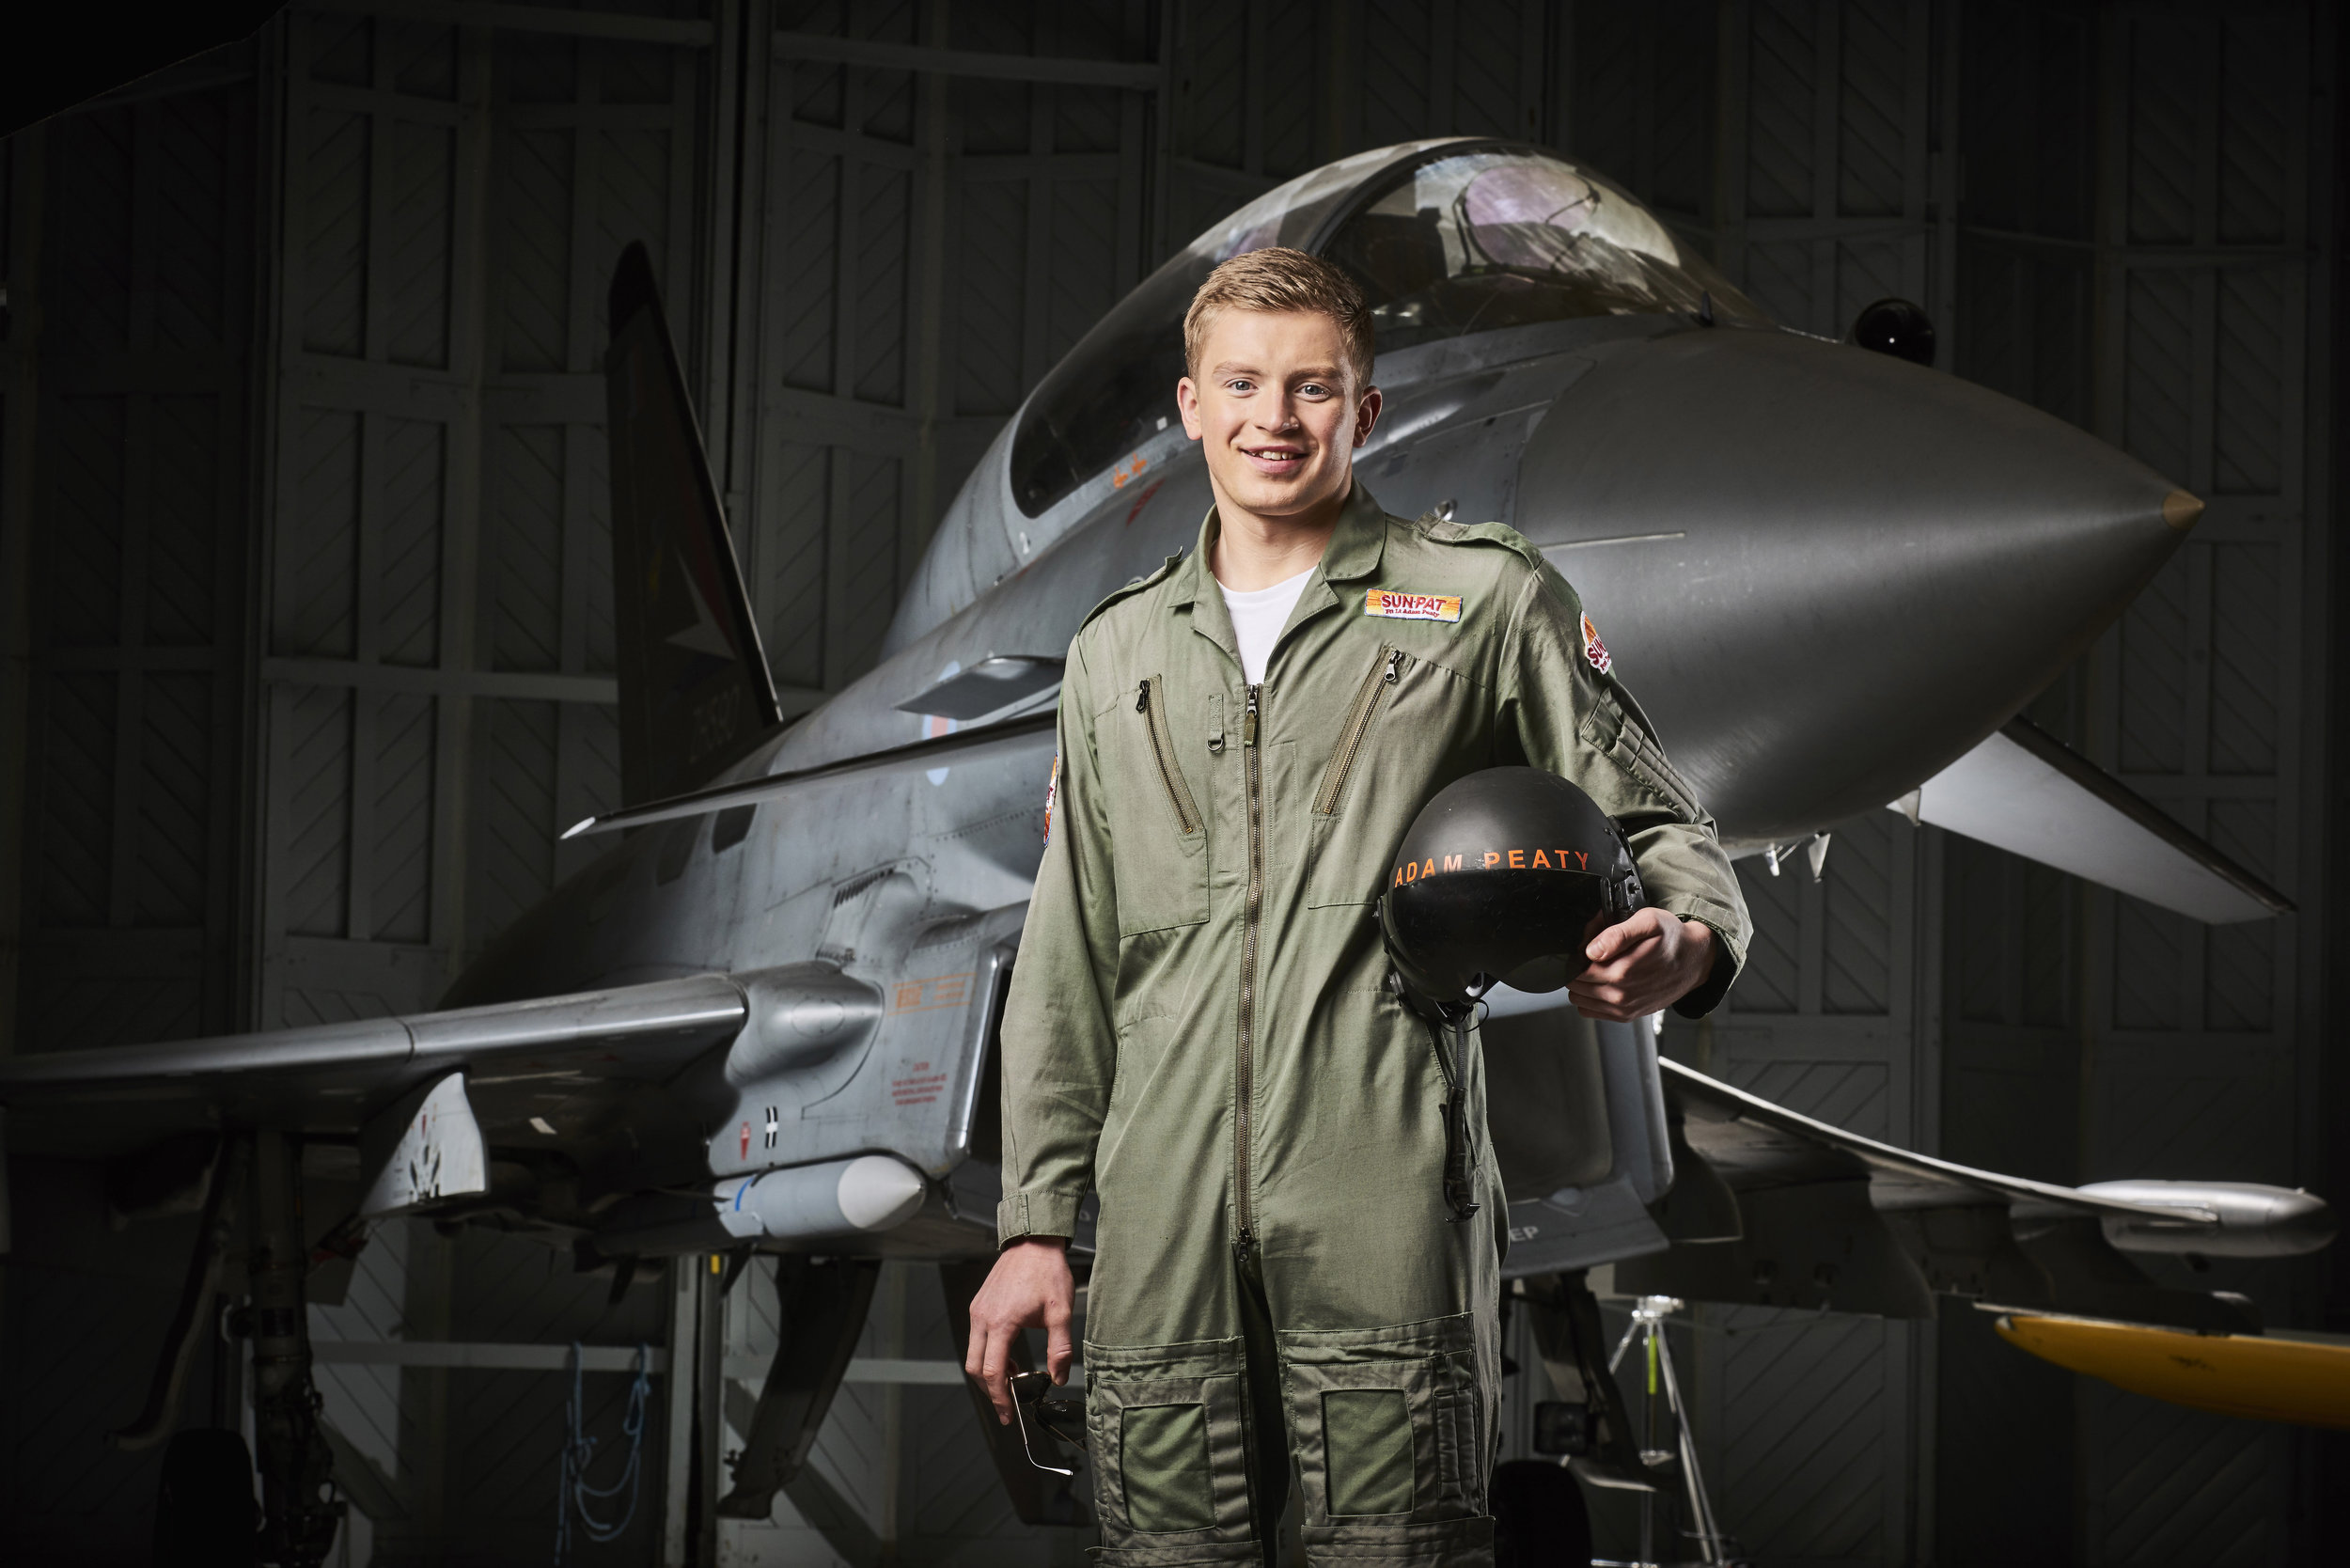 Olympic Gold medal winning swimmer Adam Peaty realises his childhood dream of being a pilot as research by Sun-Pat Peanut Butter reveals that 4 out of 5 people who had an active childhood achieved their dreams.jpg